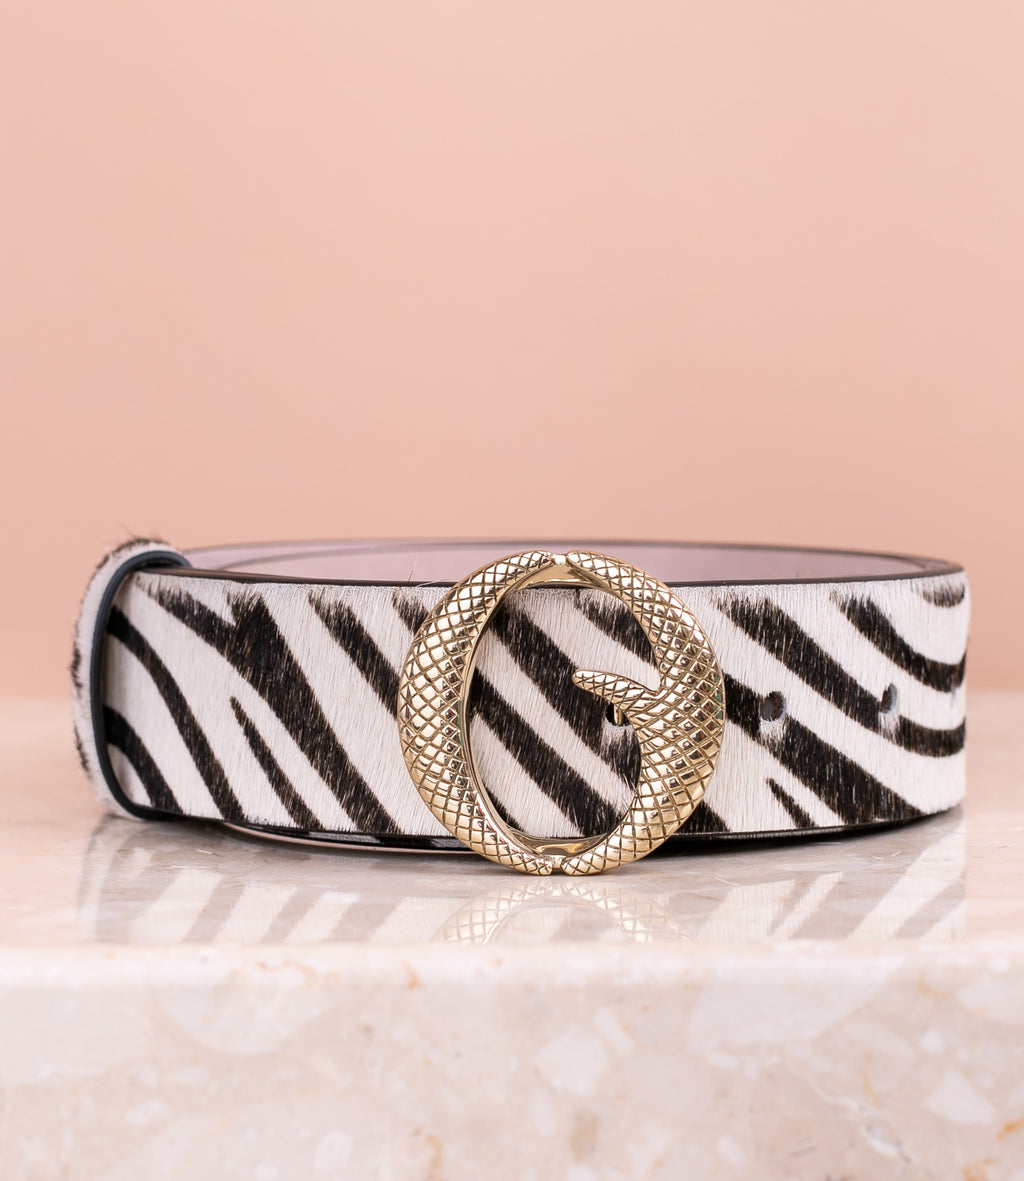 *PRE-ORDER* Medium Brass & Zebra Belt II